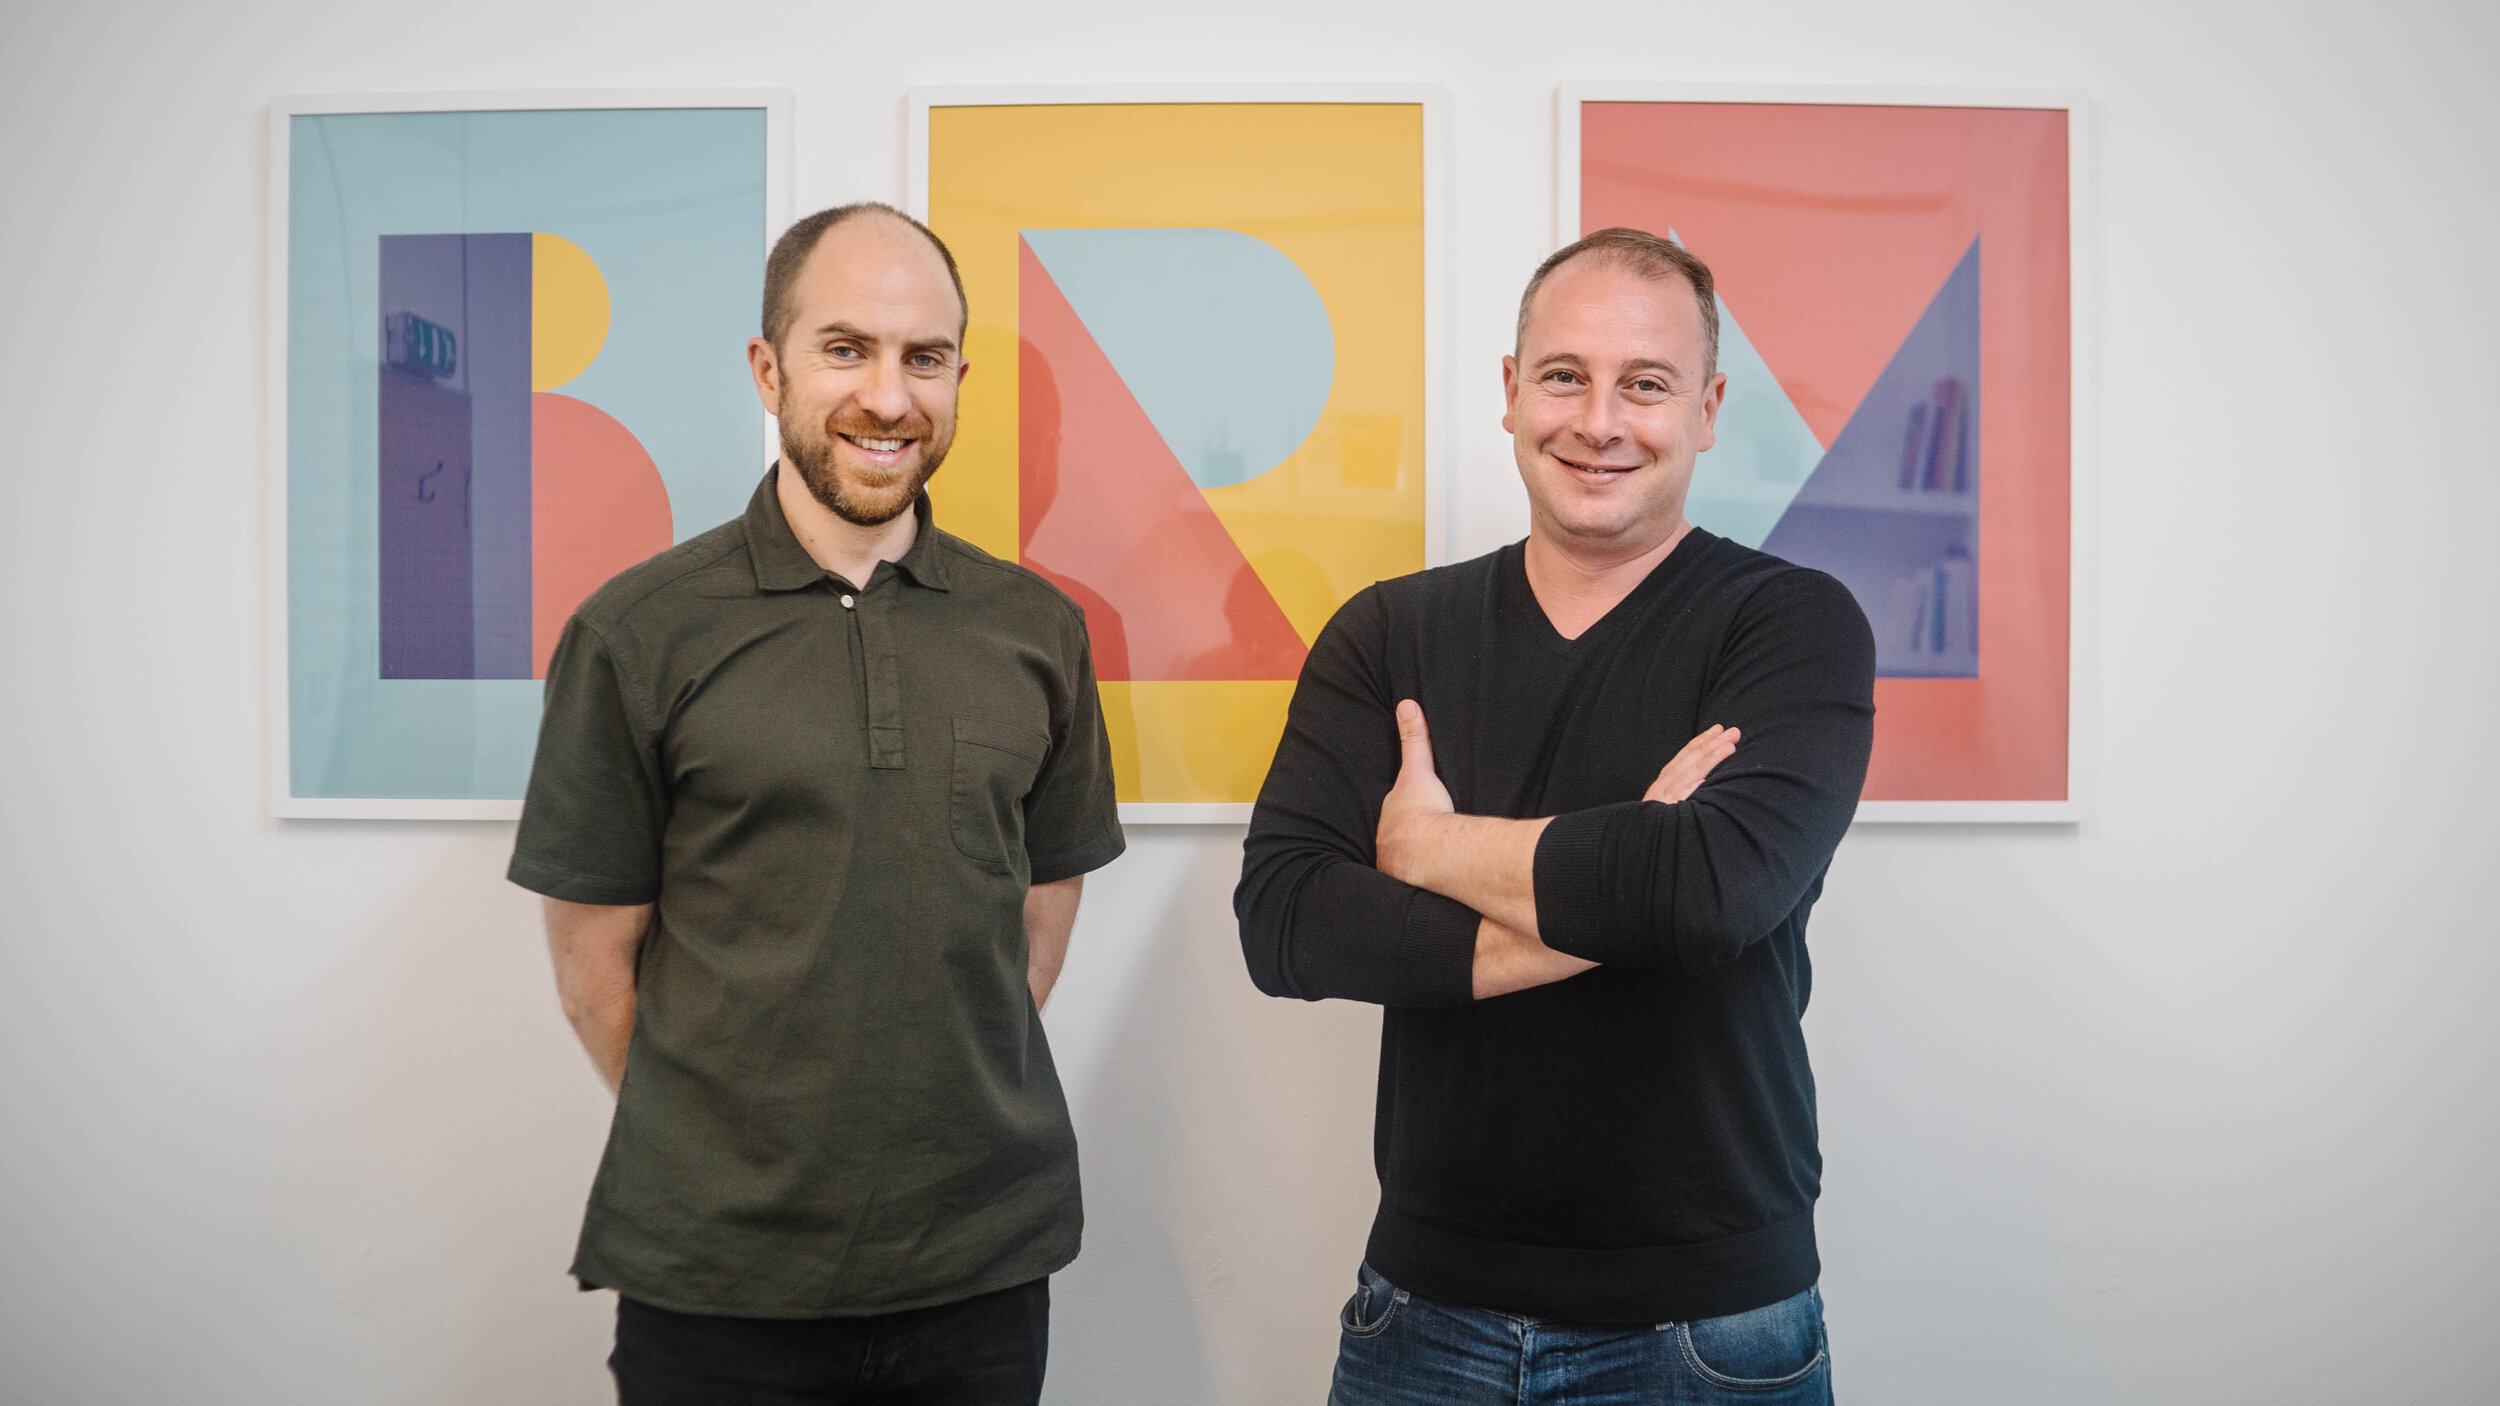 David  and  Bachir  are growing their agency with a mixture of office-based and remote workers. They will explain their approach at Clockwork.